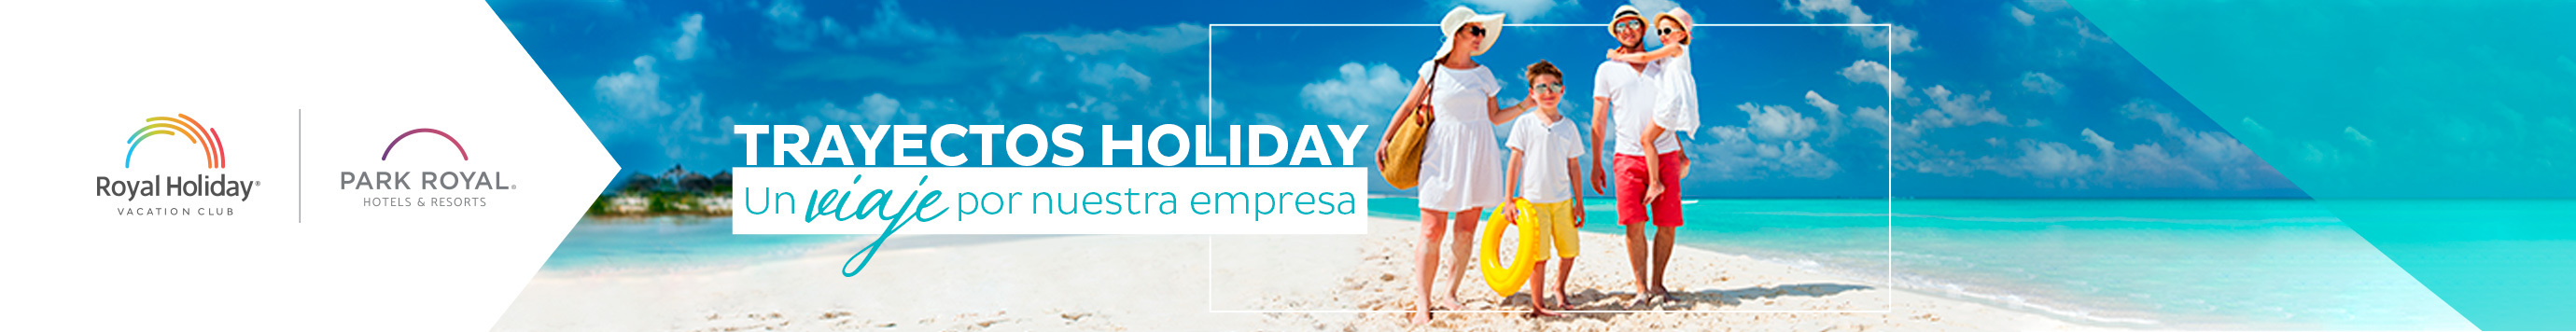 Trayectos Holiday | Royal Holiday